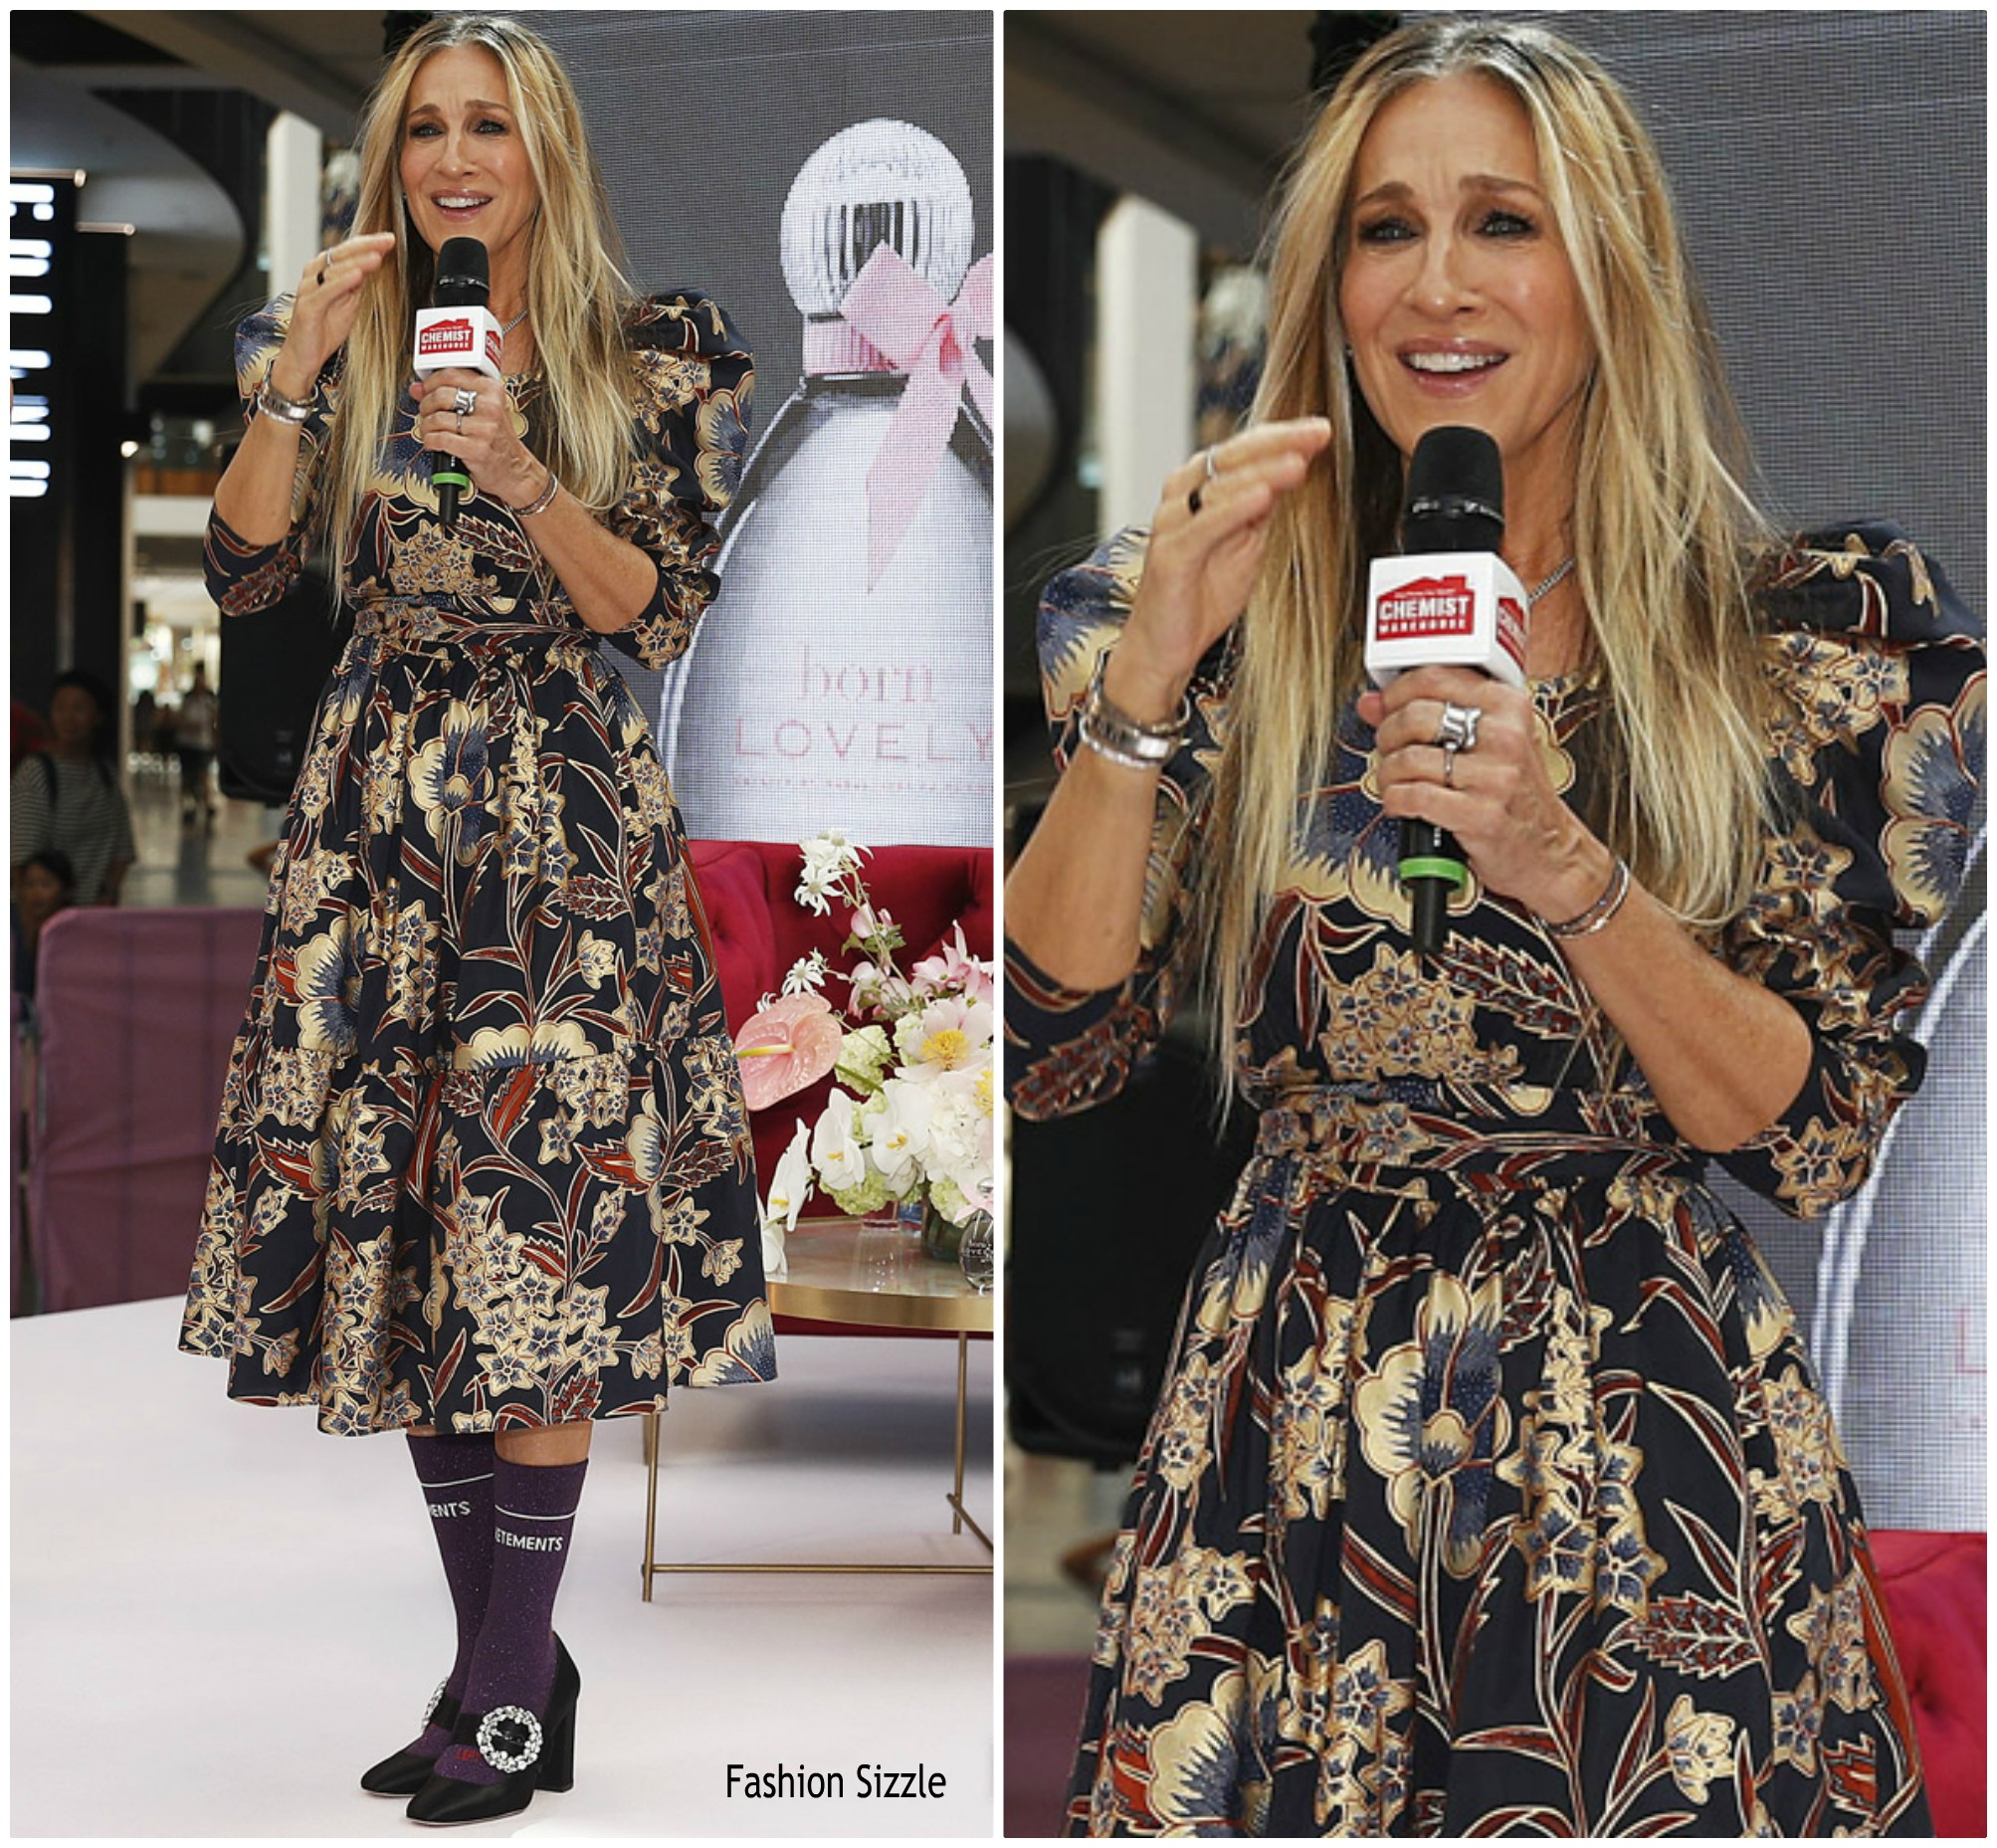 sarah-jessica-parker-in-ulla-johnson-born-lovely-fragrance-event-in-melbourne